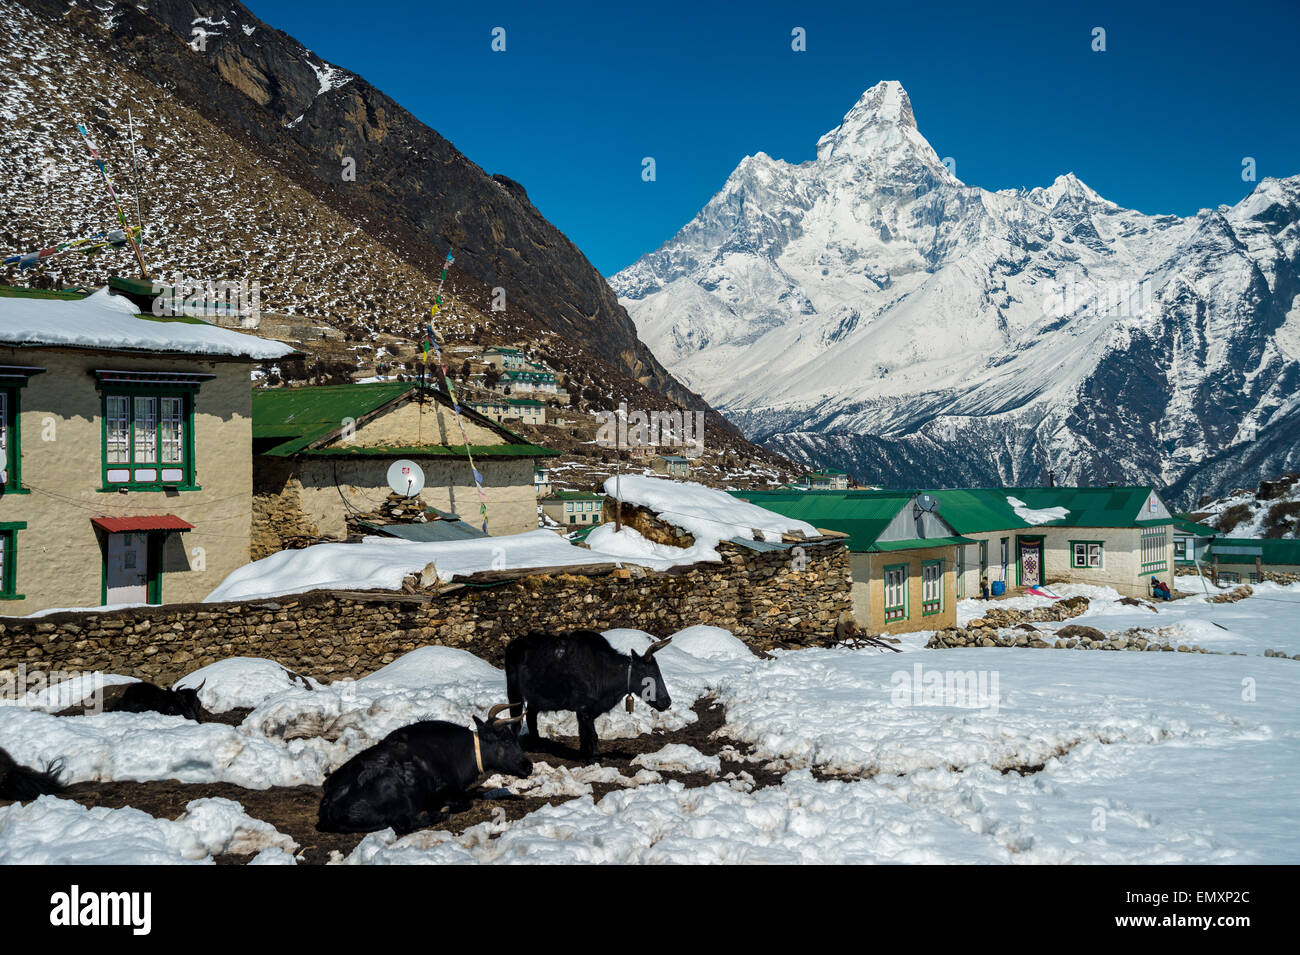 View of Ama Dablam mount from khumjung village - Stock Image